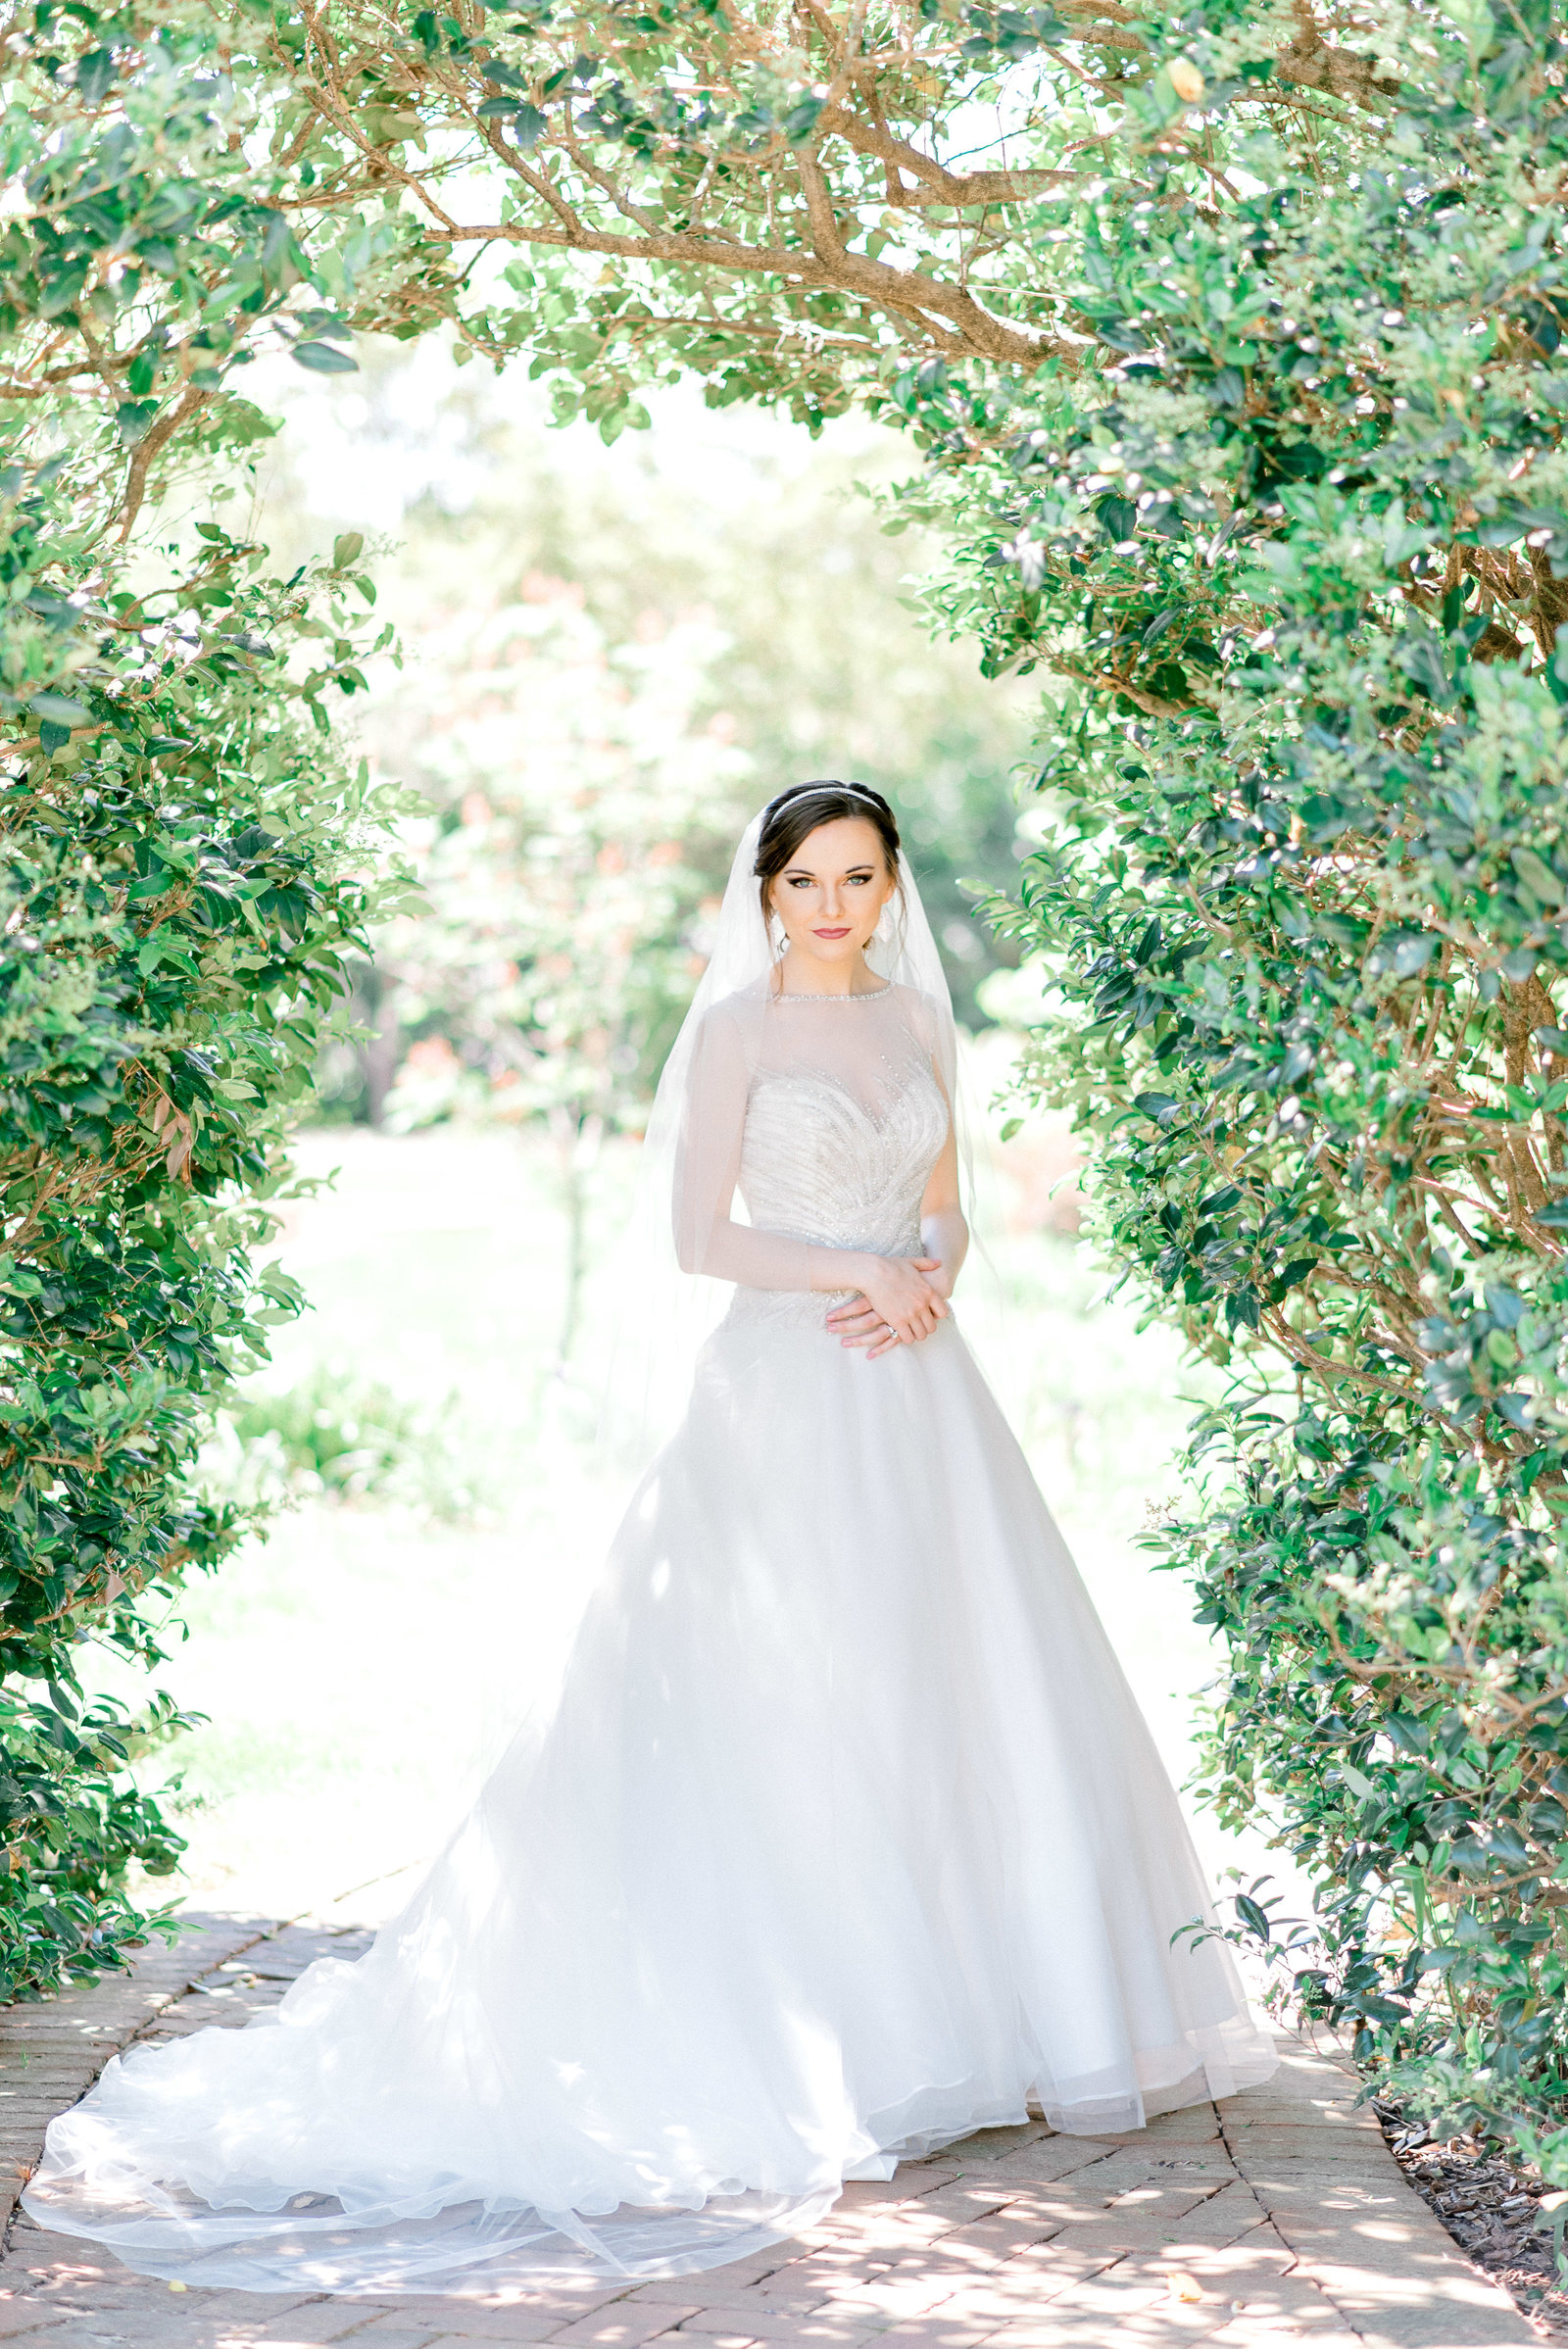 charlotte-wedding-photographer-daniel-stowe-botanical-garden-bride-bridal-session-wedding-fine-art-bright-and-airy-film-photographer-alyssa-frost-photography-5